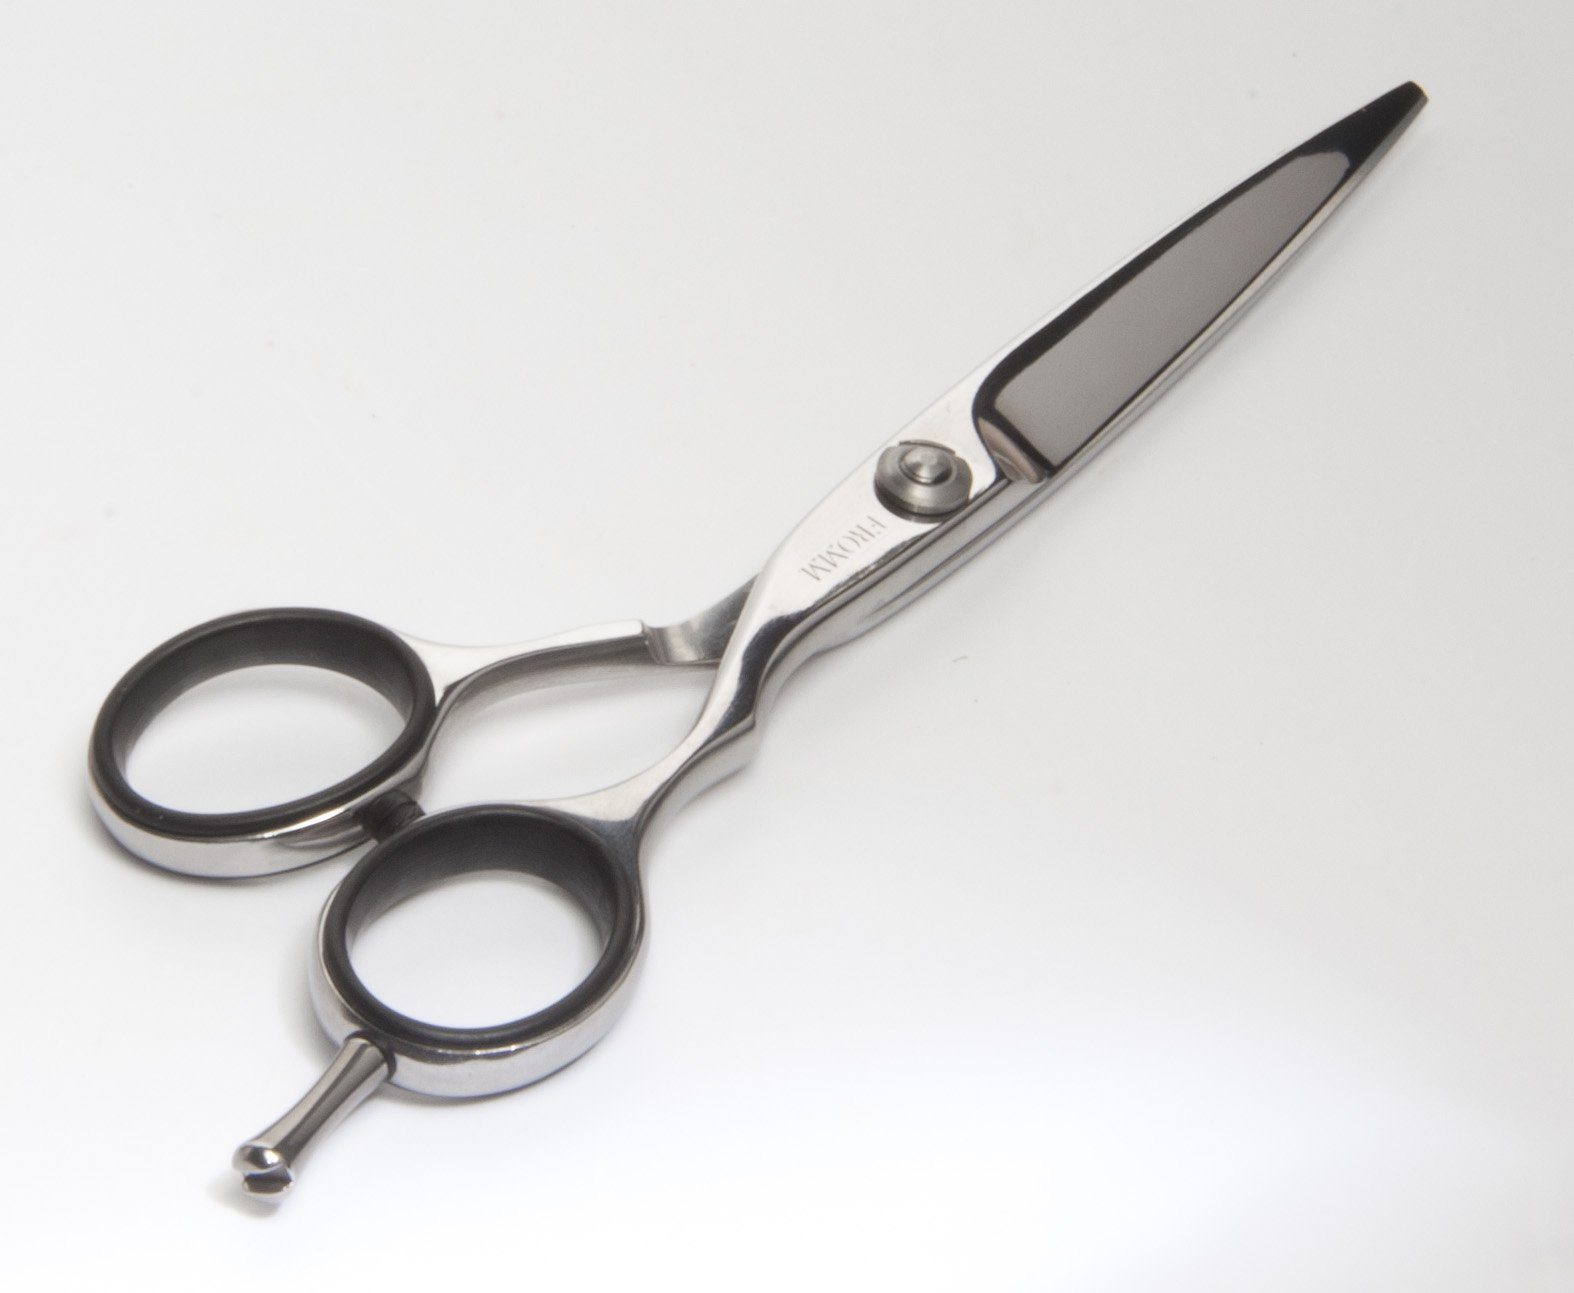 Fromm Tempo 5.75 Inch Shear, FCS007 by Fromm (Image #6)